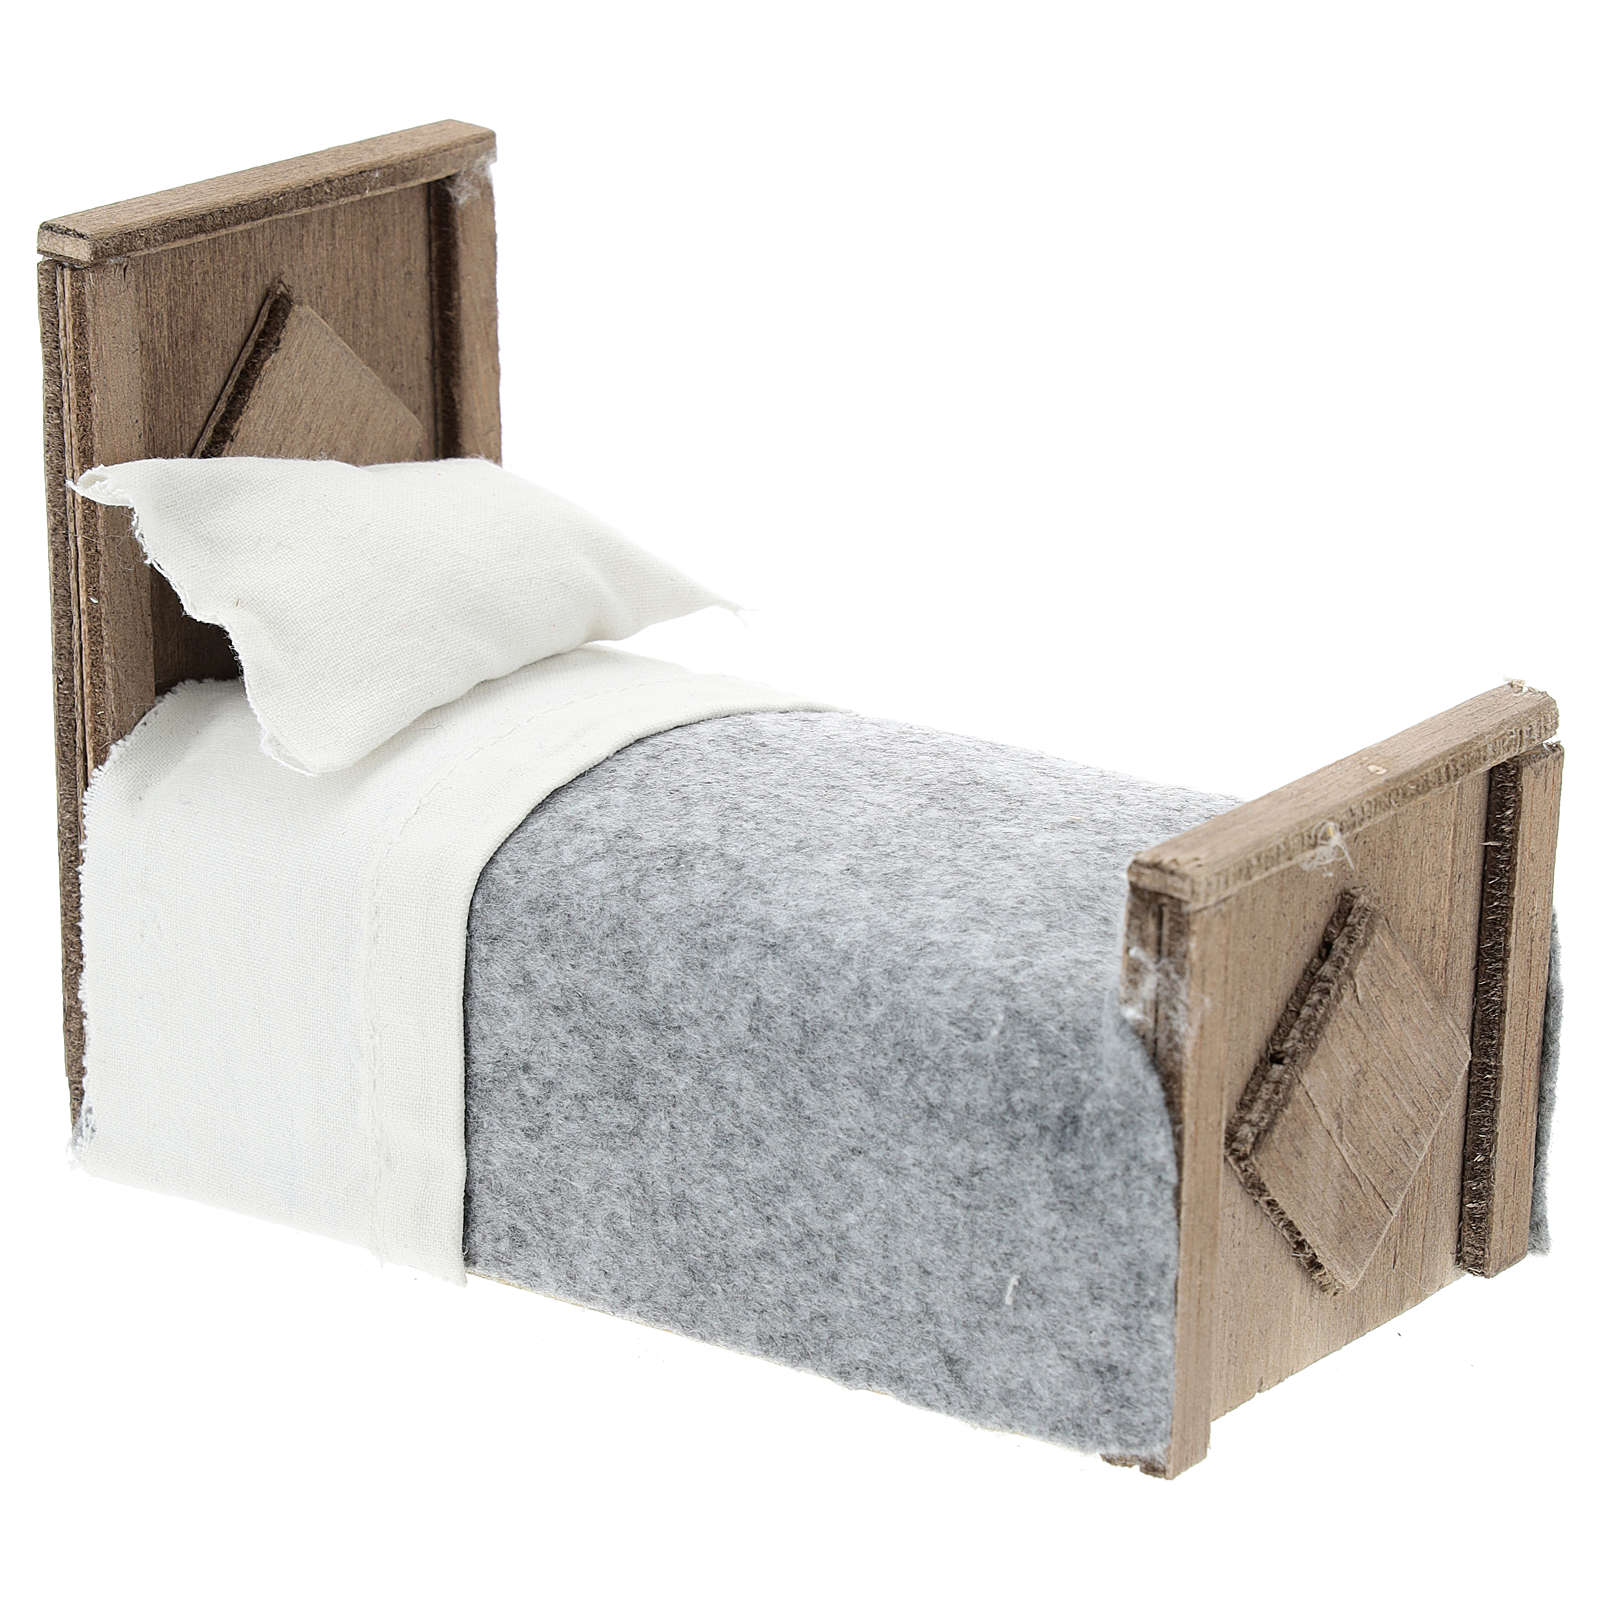 Bed with blanket and fabric sheets for Nativity scenes 15 cm 4